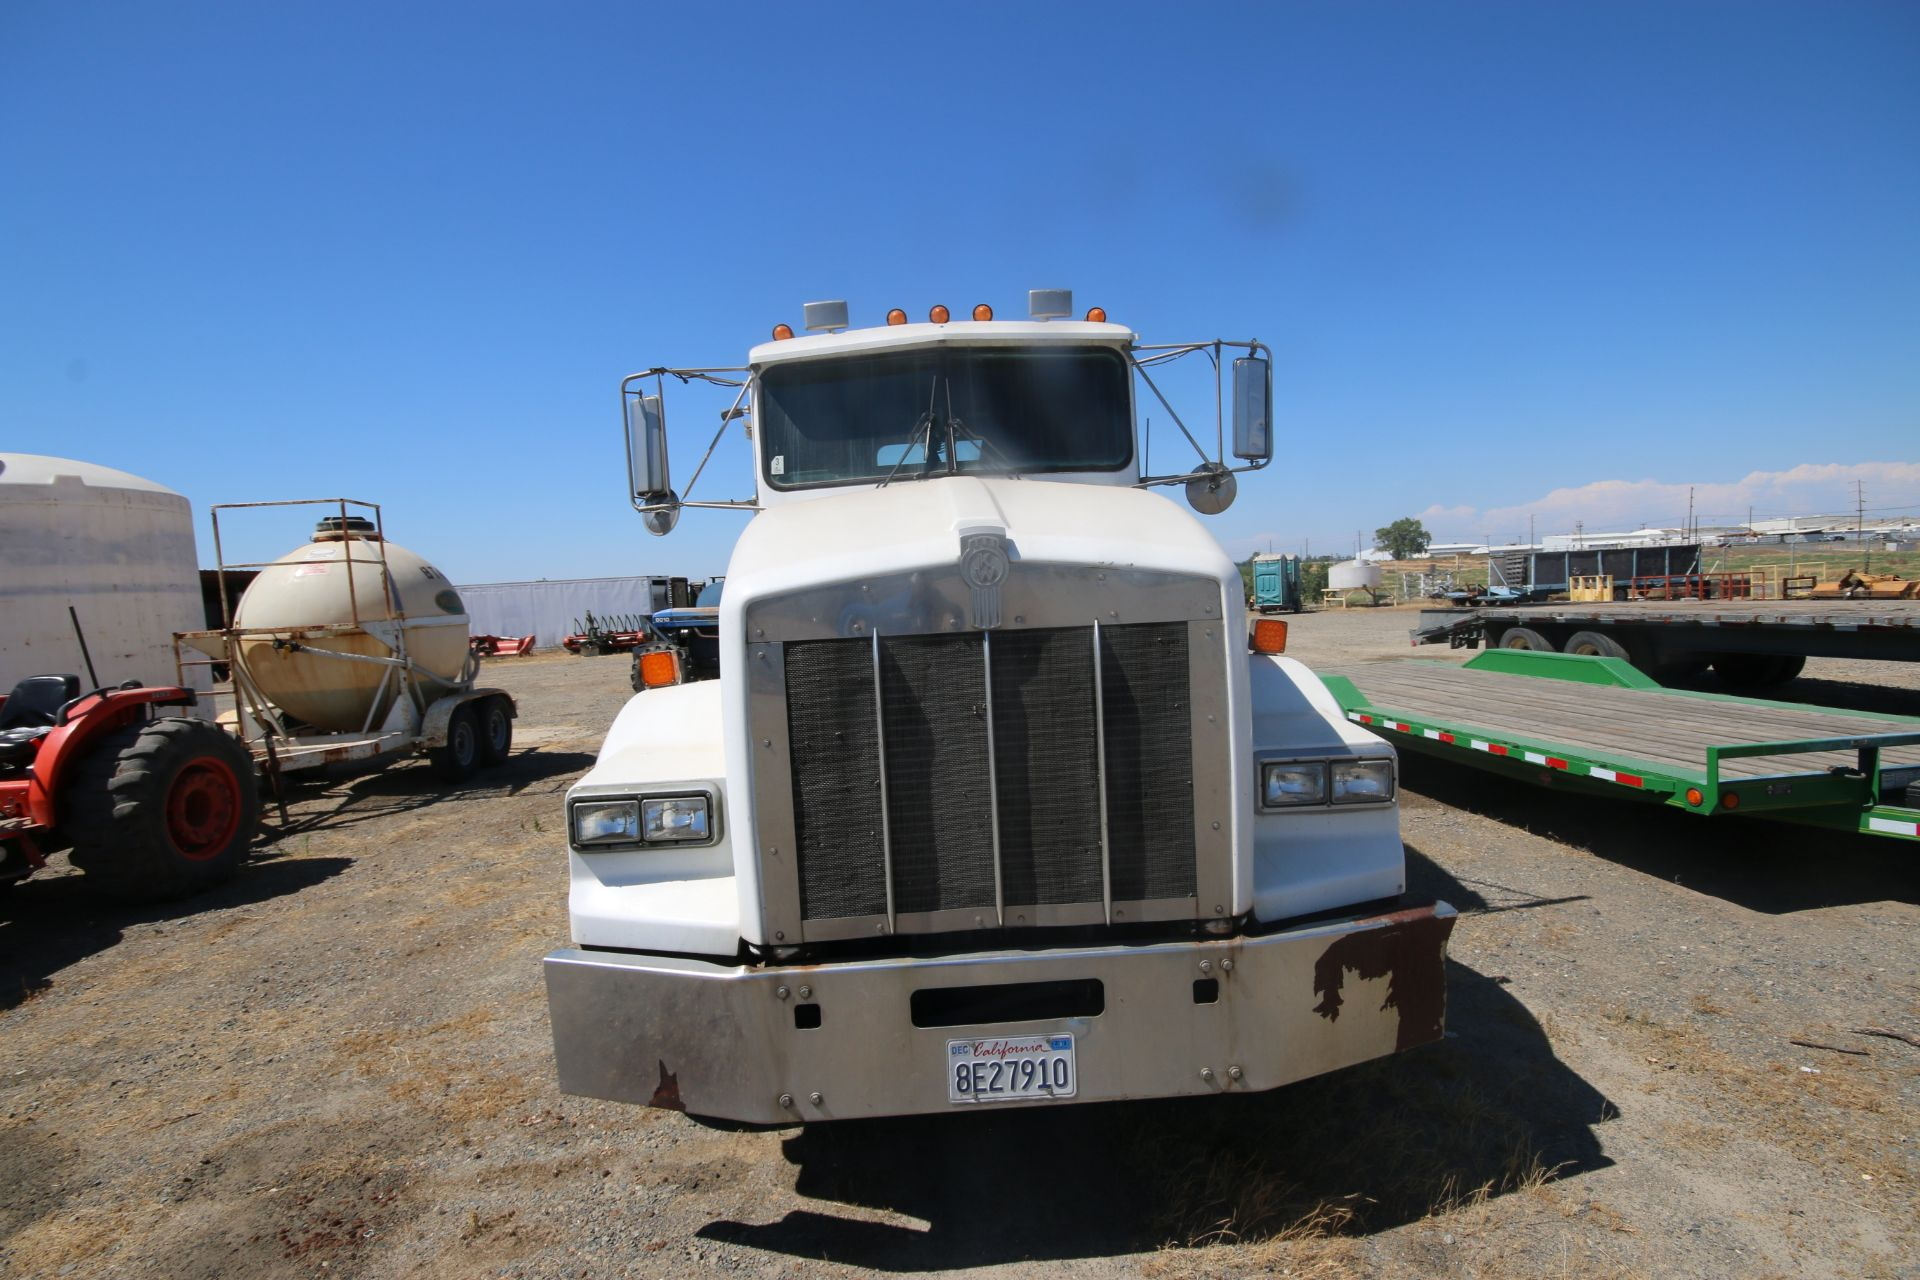 1996 Kenworth 3-Axle Roll-Off Straight Truck, VIN #: 1XKDDB9XOTS687107, with 24,722 Miles, License - Image 6 of 30